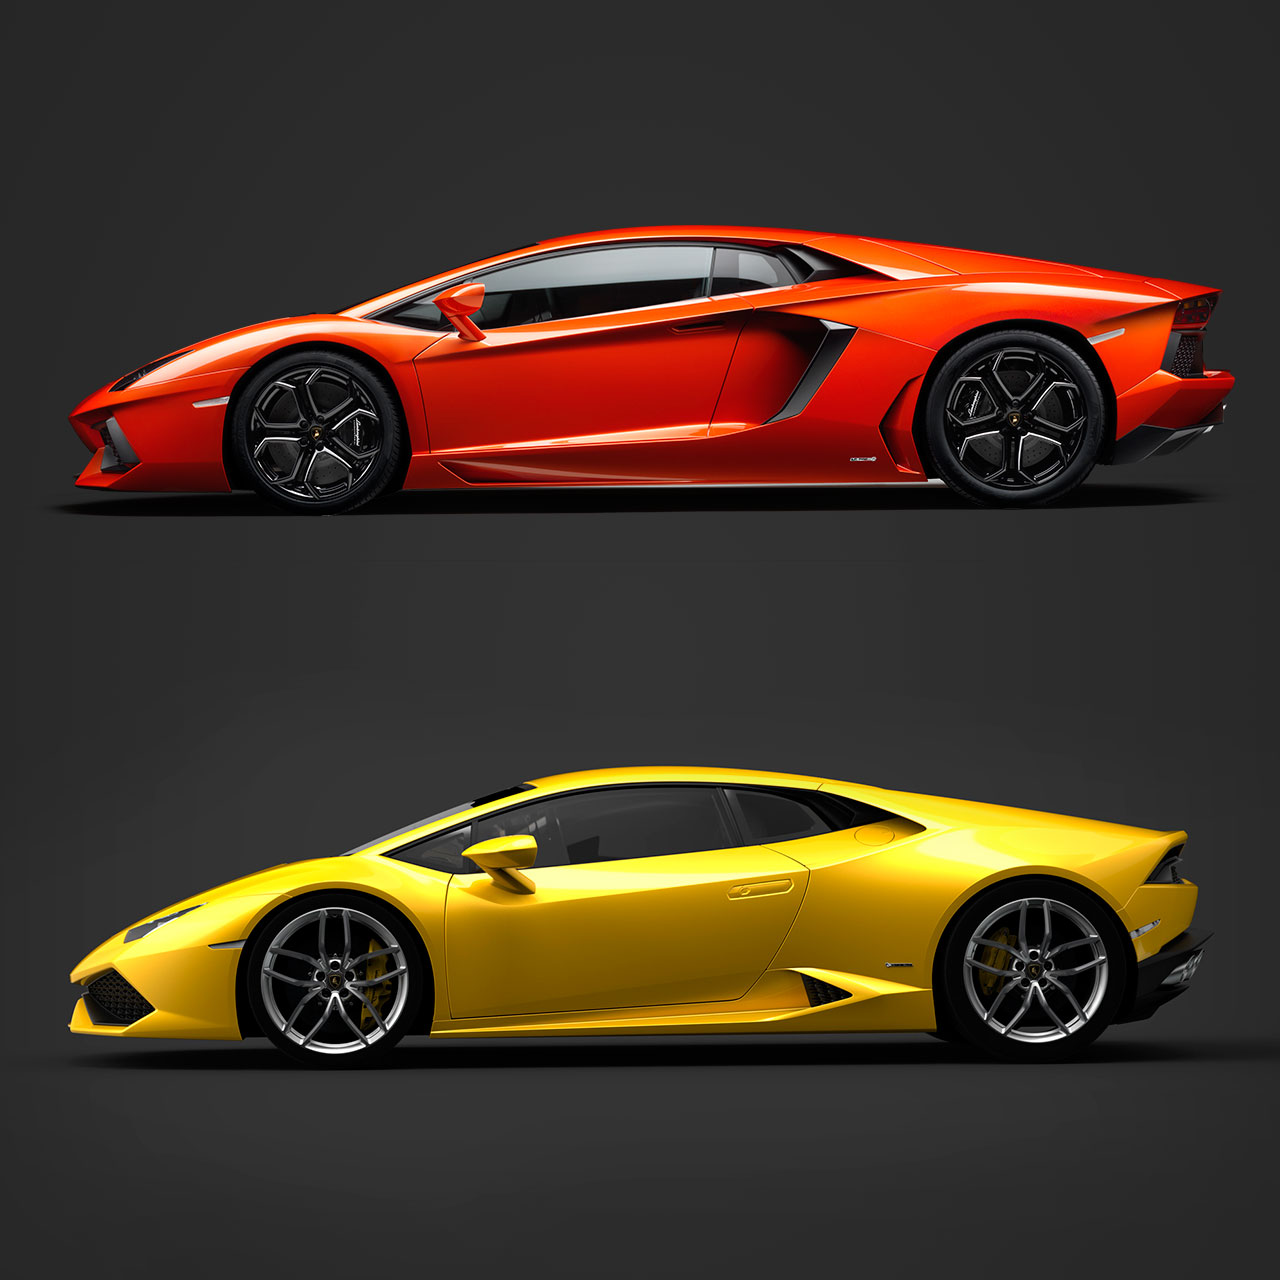 lamborghini aventador and huracan design comparison car body design. Black Bedroom Furniture Sets. Home Design Ideas